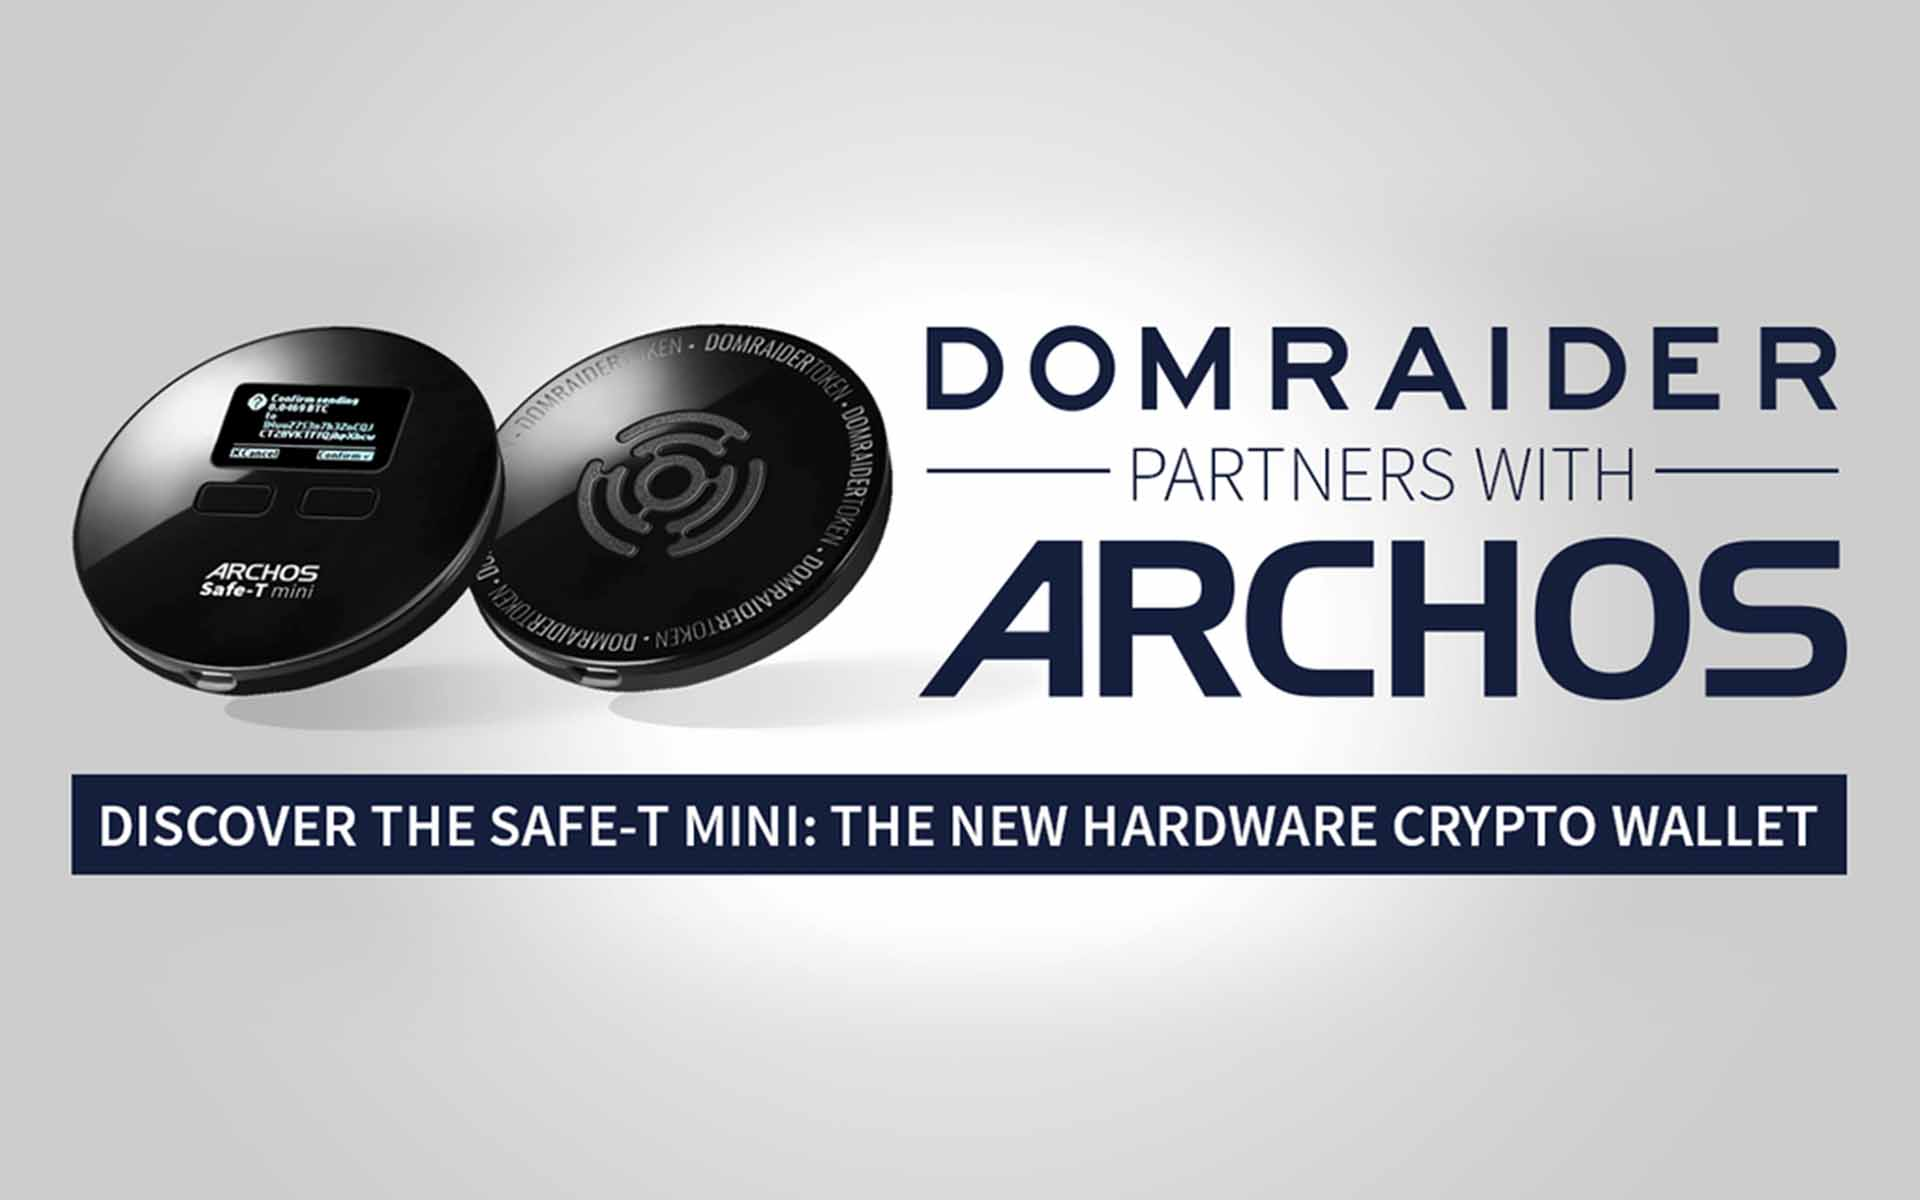 Safe-T Mini, the First Hardware Wallet for Cryptocurrencies by Archos and Its Brand New Partner: Domraider!